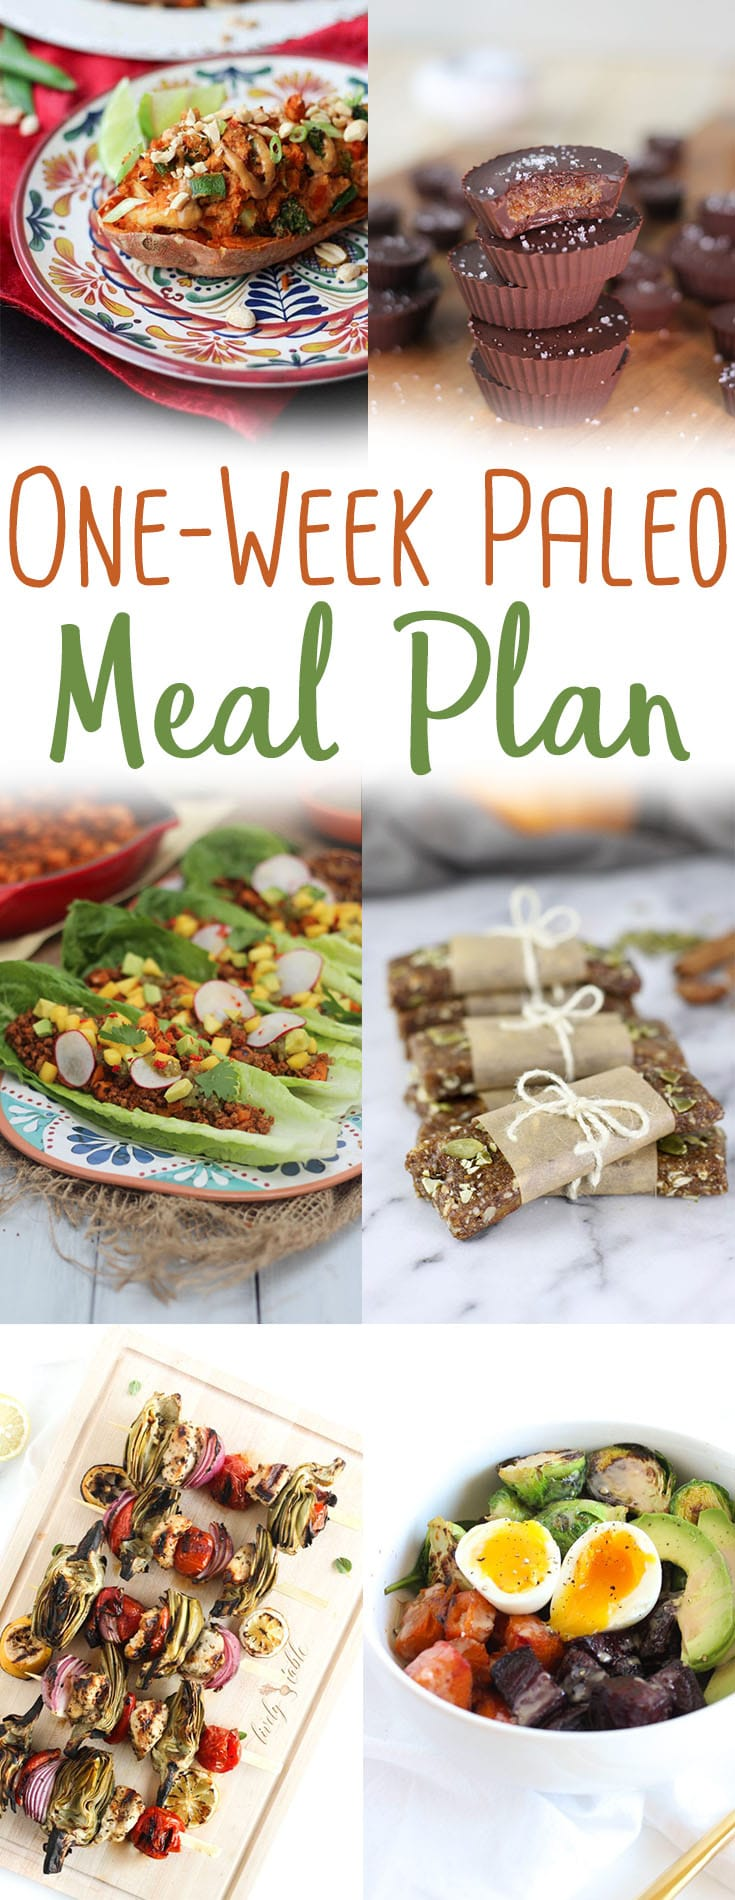 Get your Healthy One Week High Protein Paleo Meal Plan filled with Budget Friendly Easy Recipes that provide around 1700 calories and 100 grams of protein. #highprotein #paleorecipes #mealplan #oneweek #mealplanning #paleodinner #paleobreakfast #paleolunch #healthyrecipes #easyrecipes